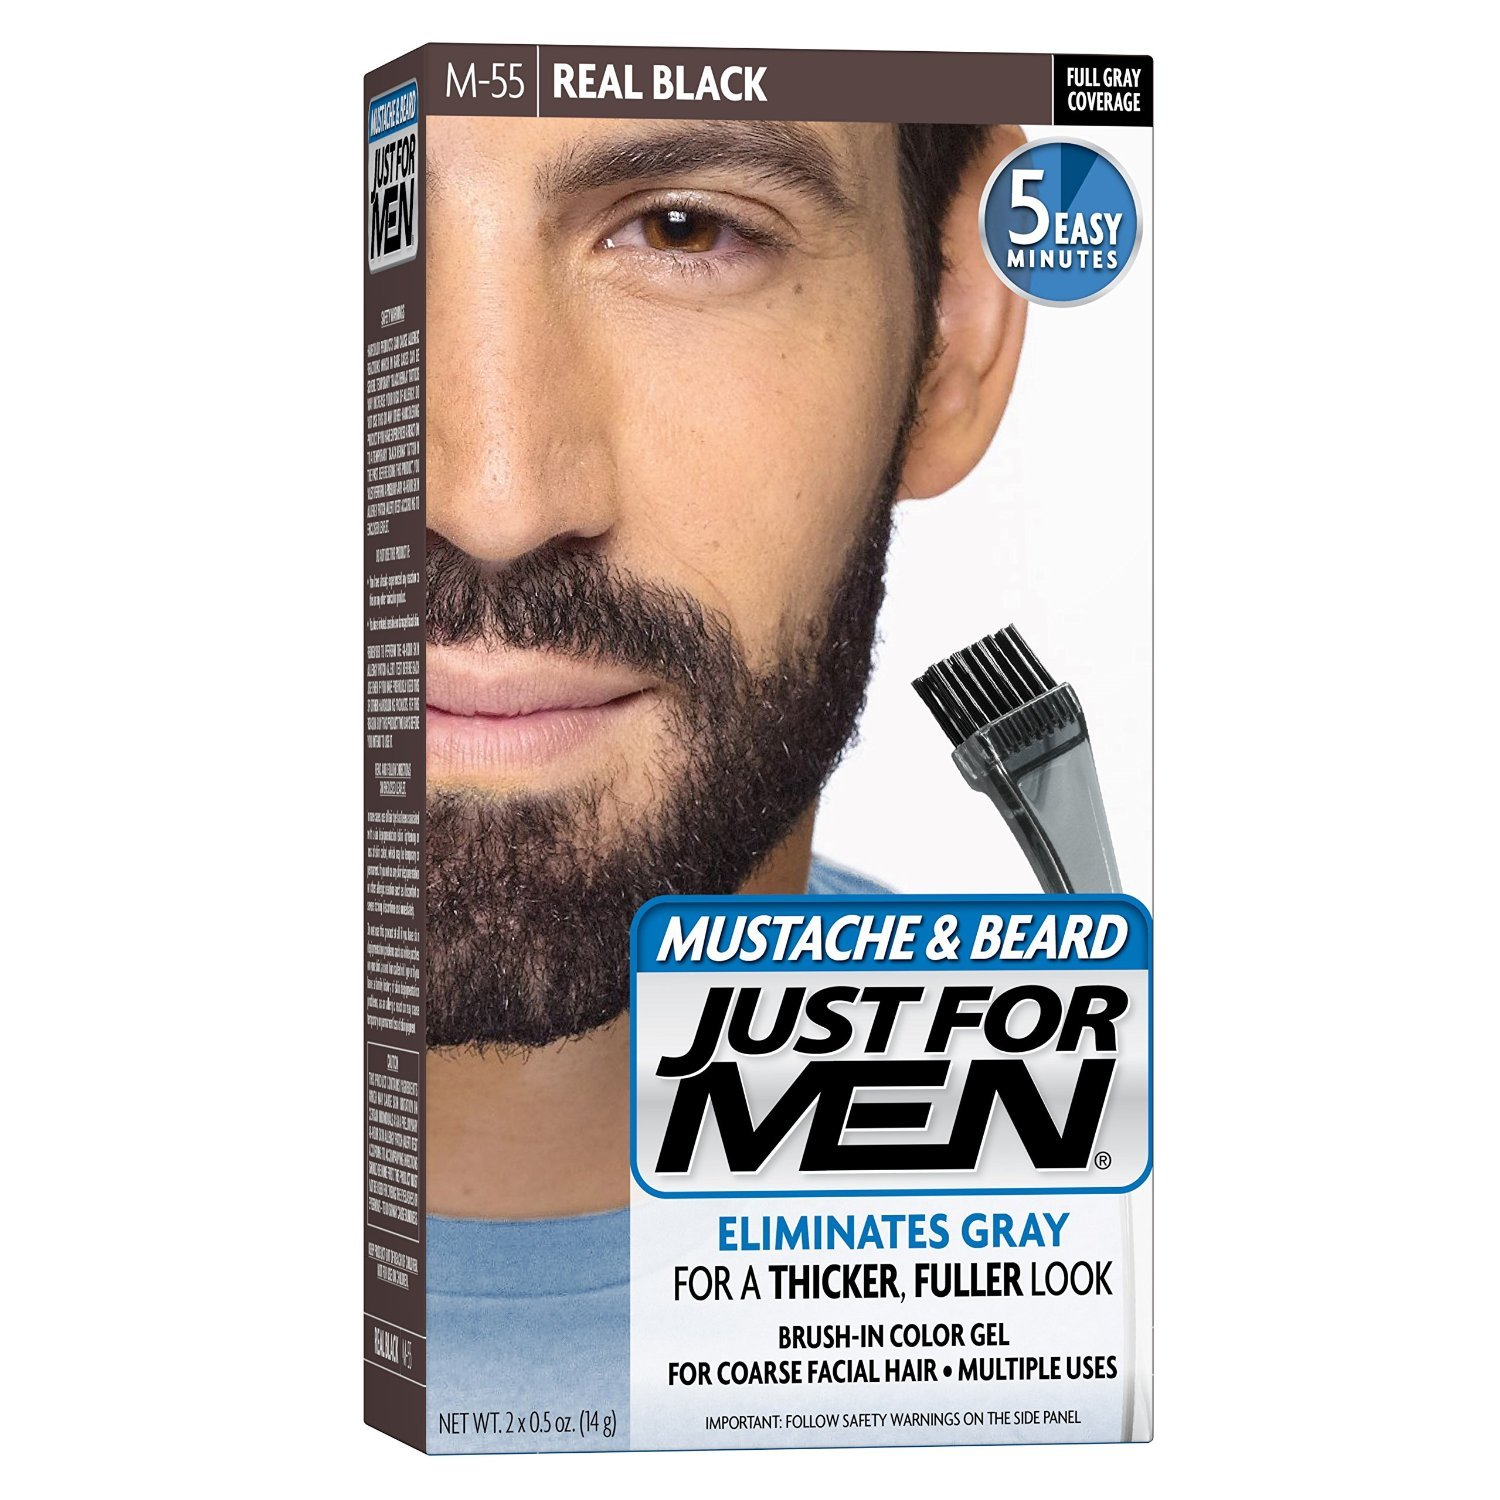 JUST FOR MEN Color Gel Mustache & Beard M-55 Real Black 1 Each 011509049056